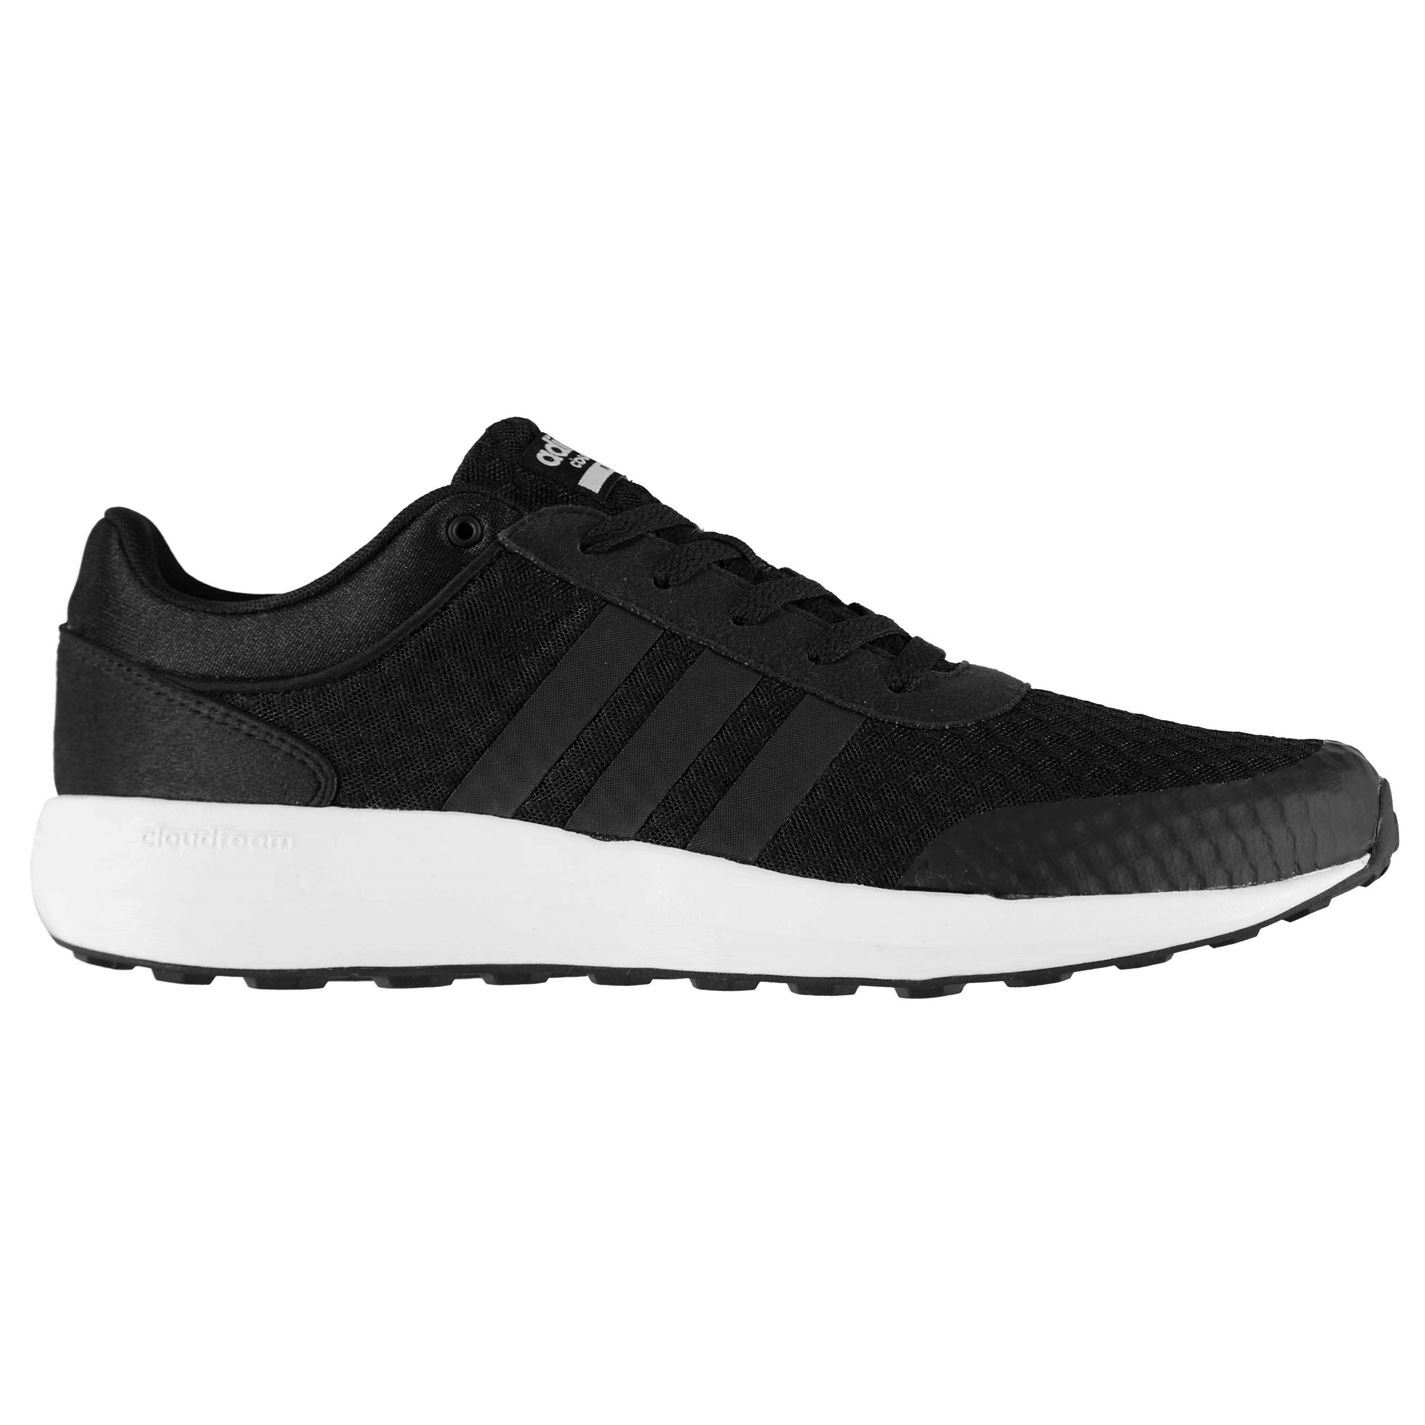 Regularidad torneo amor  adidas Cloudfoam Race Running Shoes Mens Black/White Jogging Trainers  Sneakers | eBay